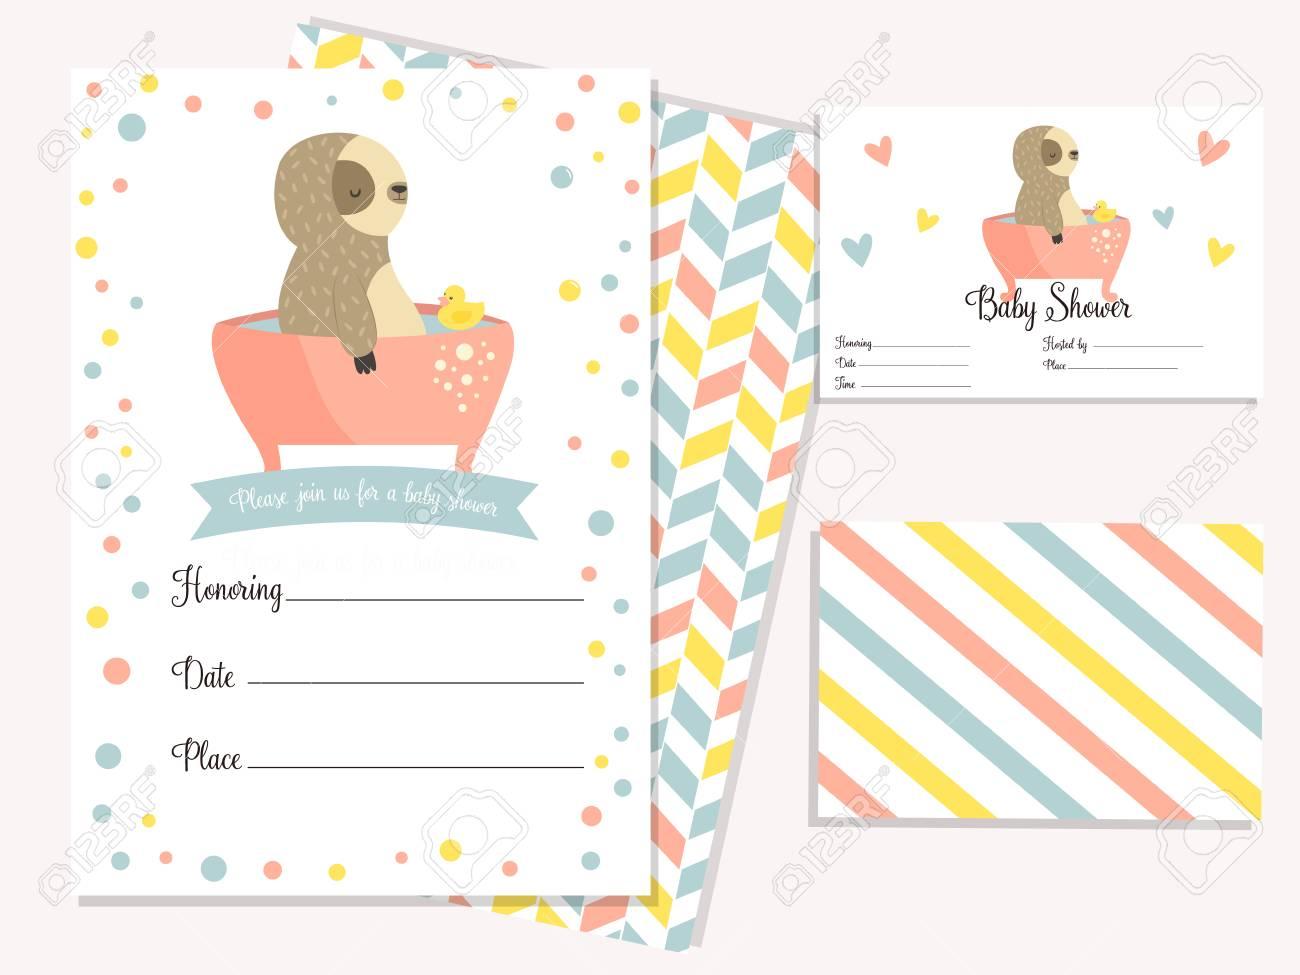 baby shower invitation card with cute sloth in bath template